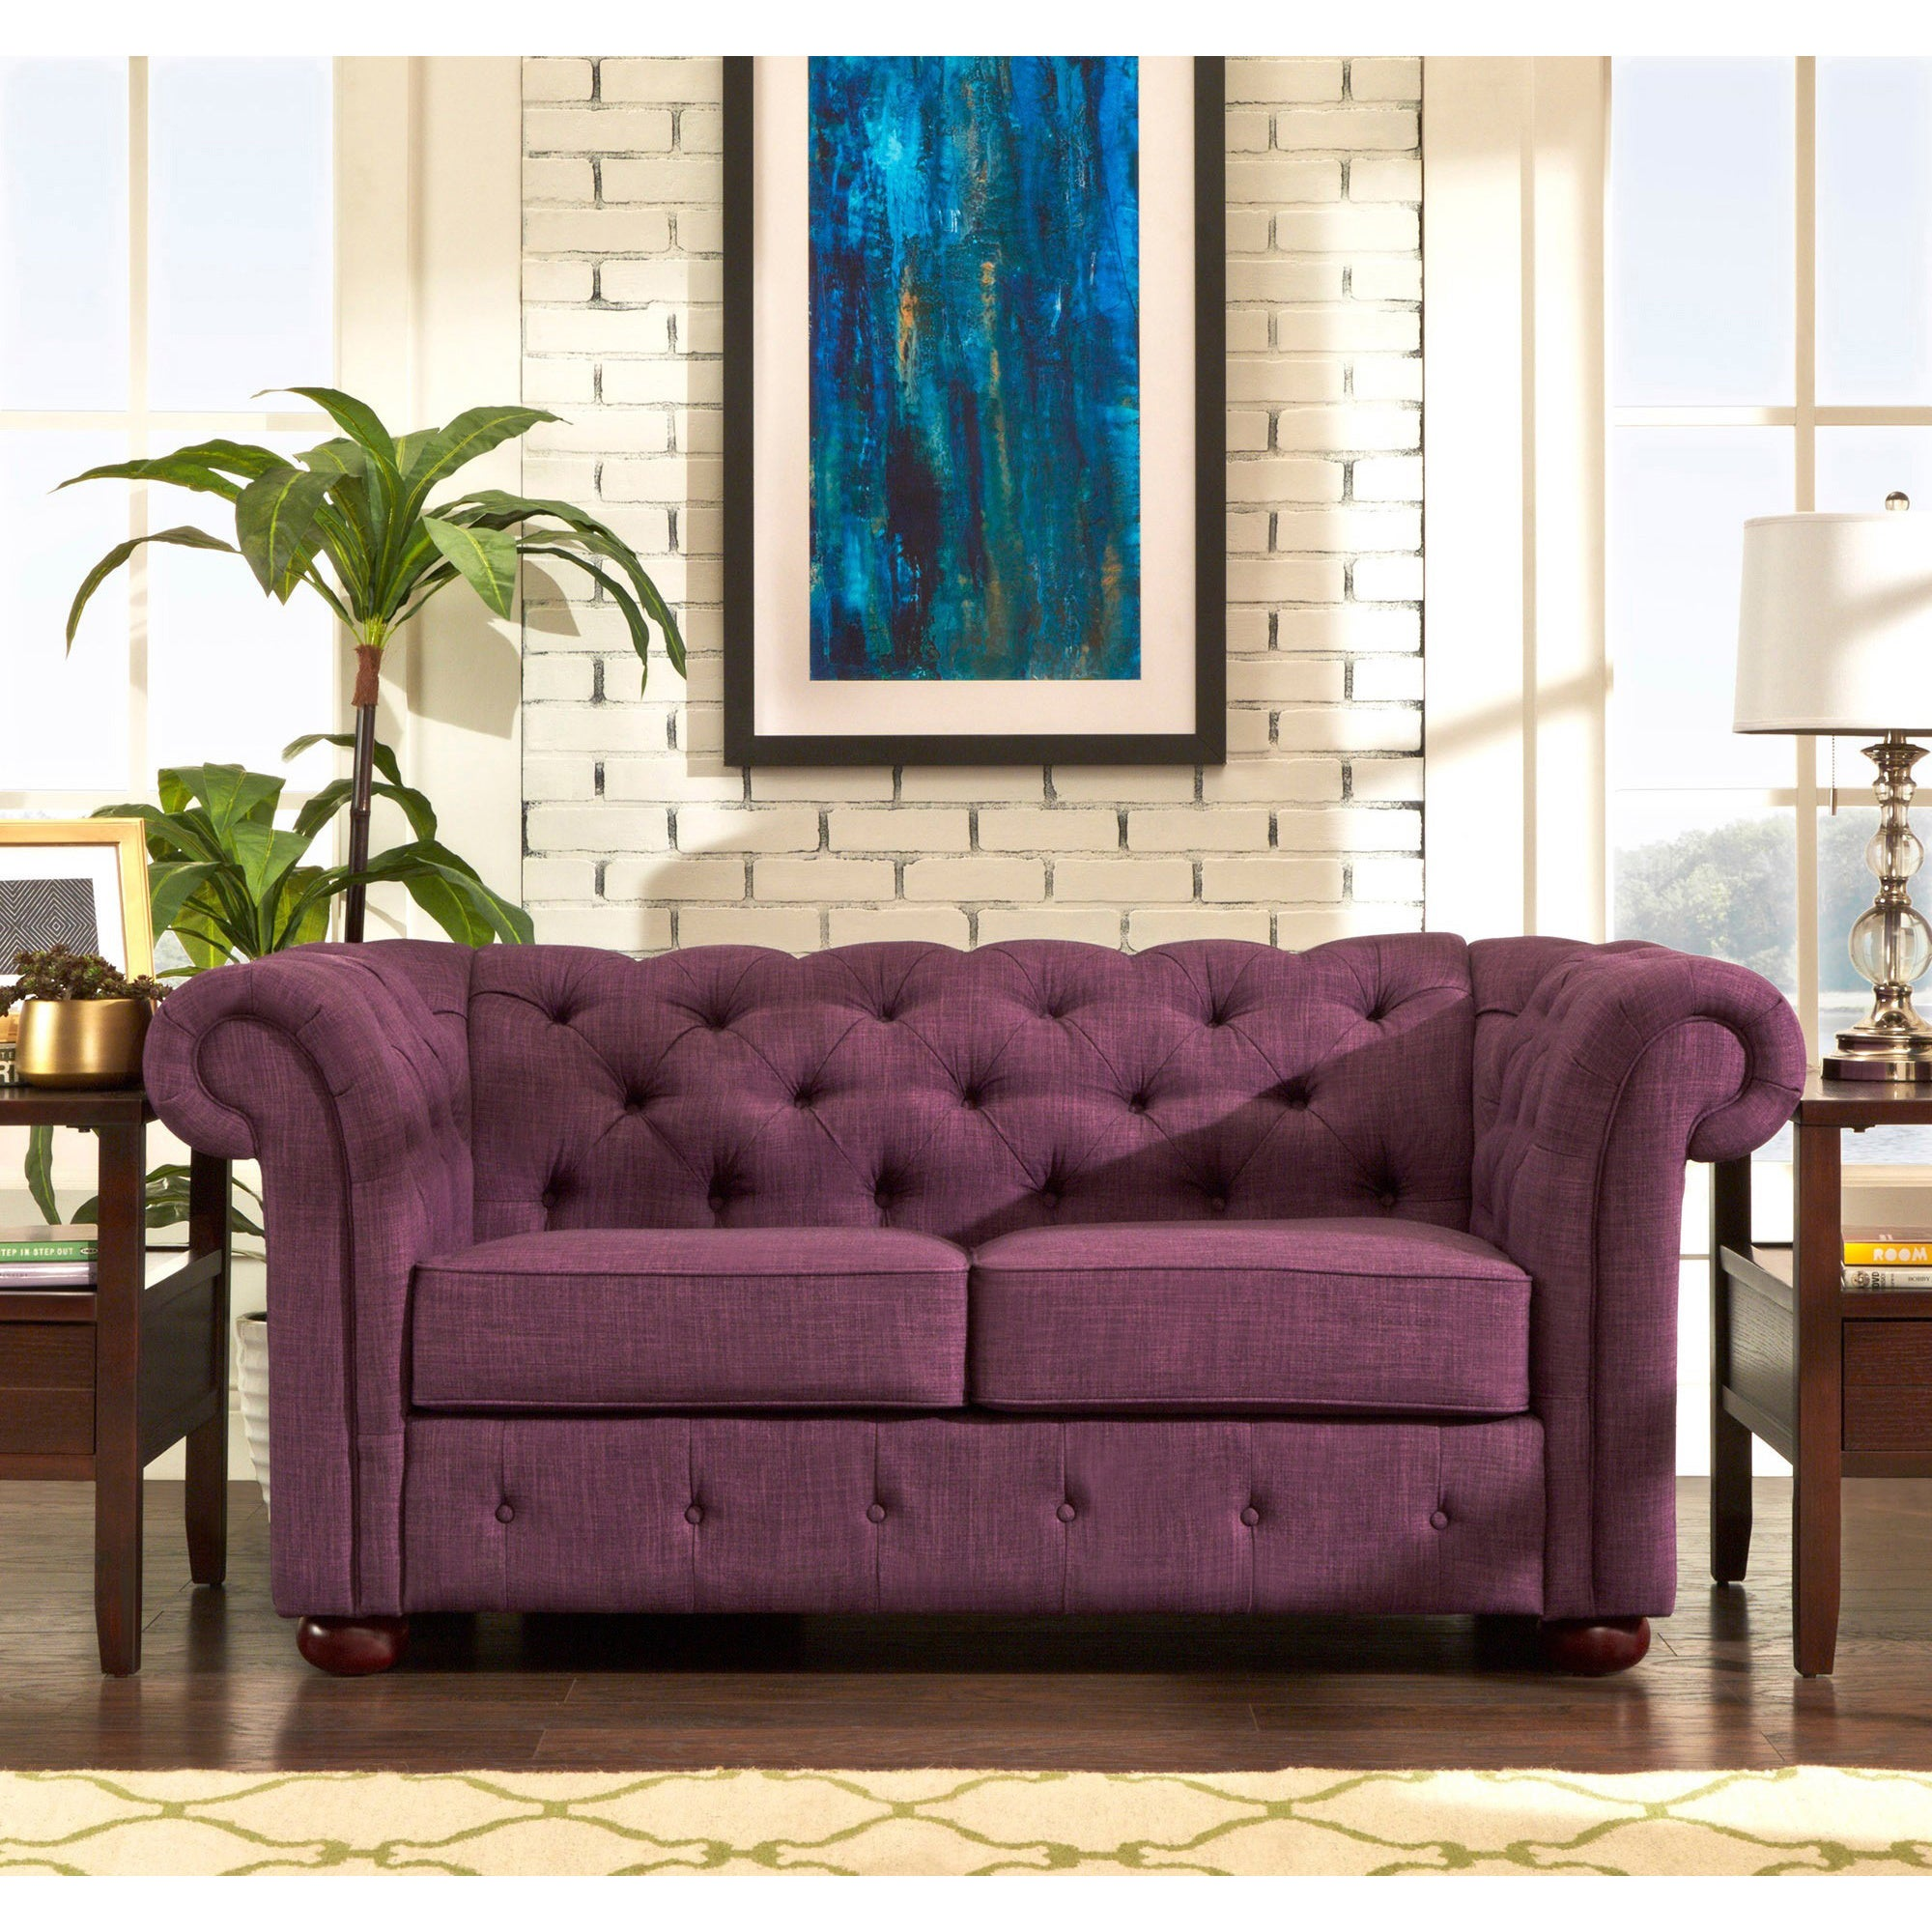 Knightsbridge Tufted Scroll Arm Chesterfield Loveseat by iNSPIRE Q Artisan  - Free Shipping Today - Overstock.com - 16408511